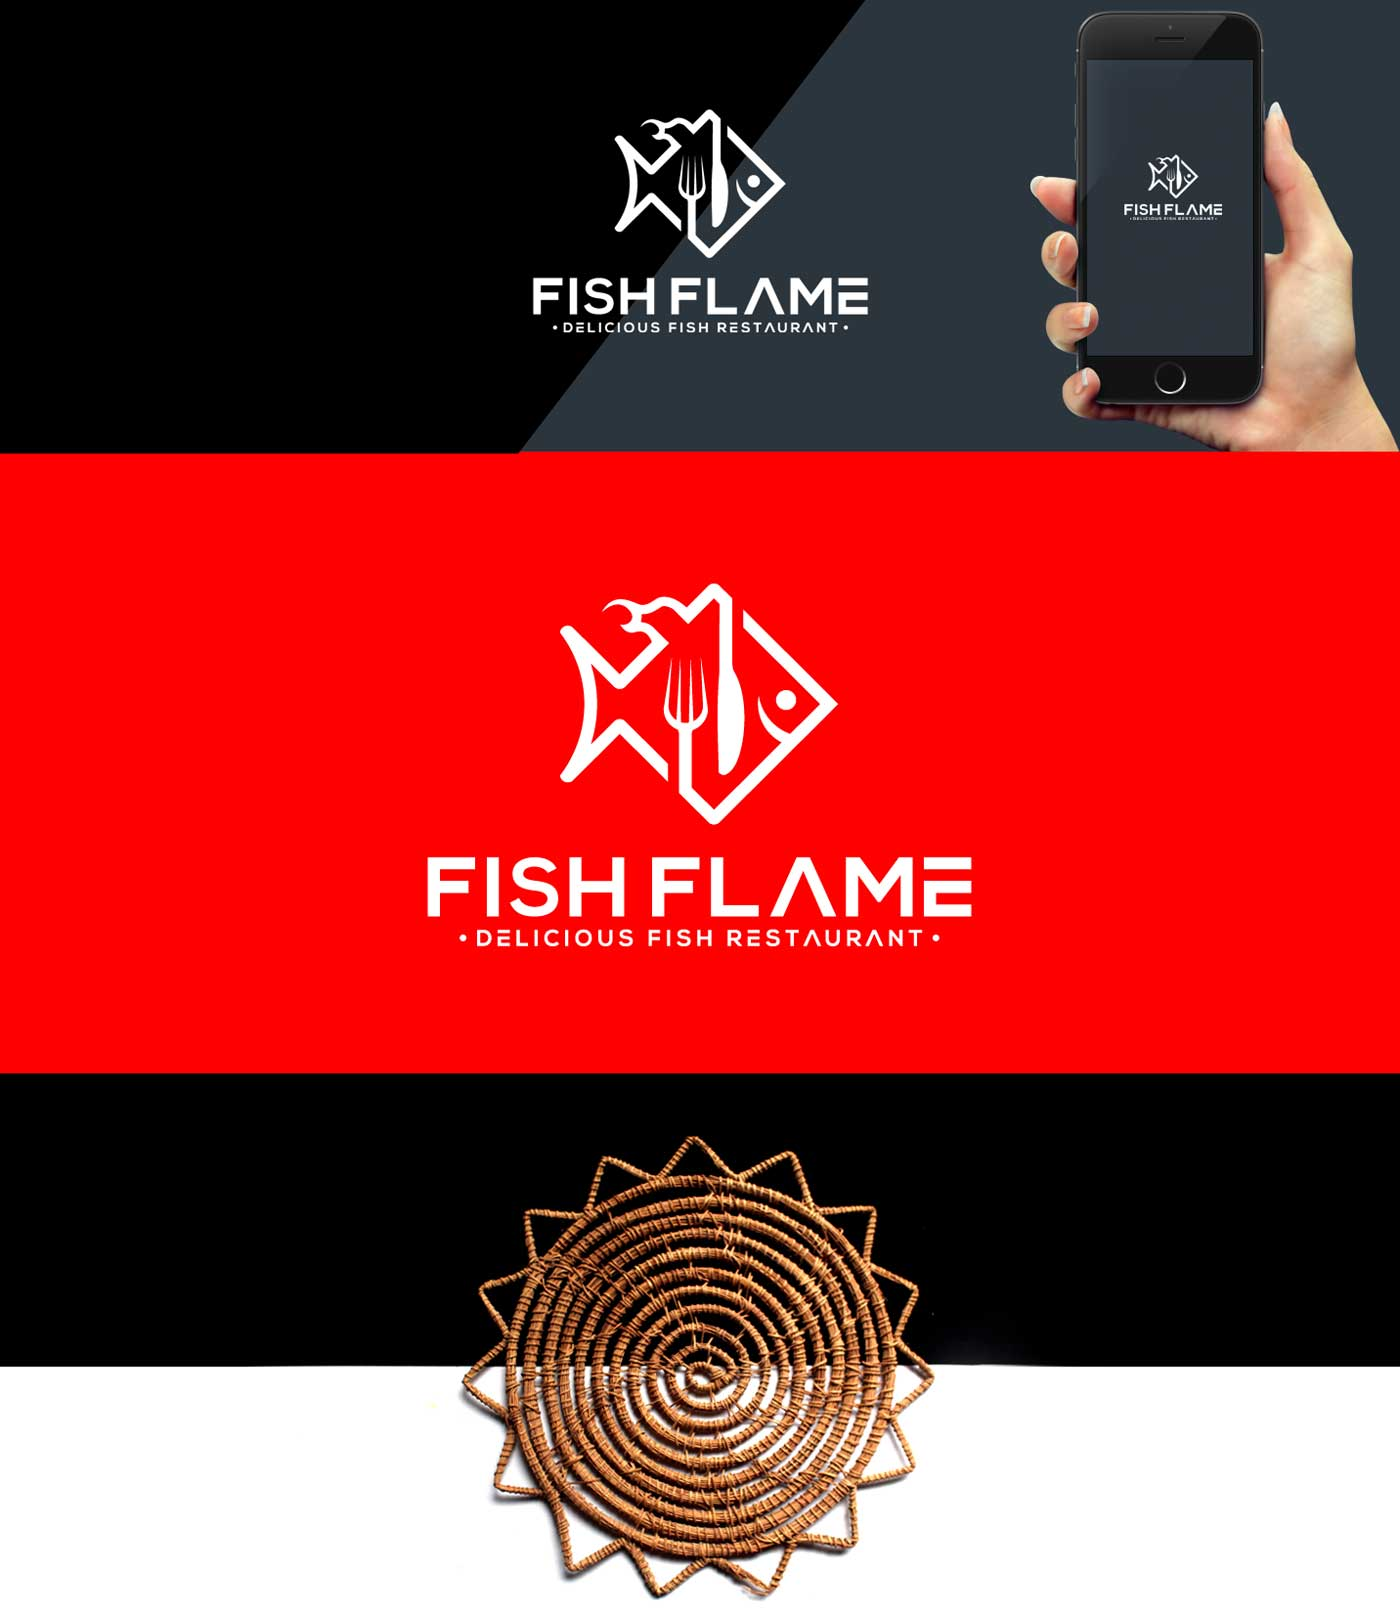 Logo presentation on black, red background and on smart phone